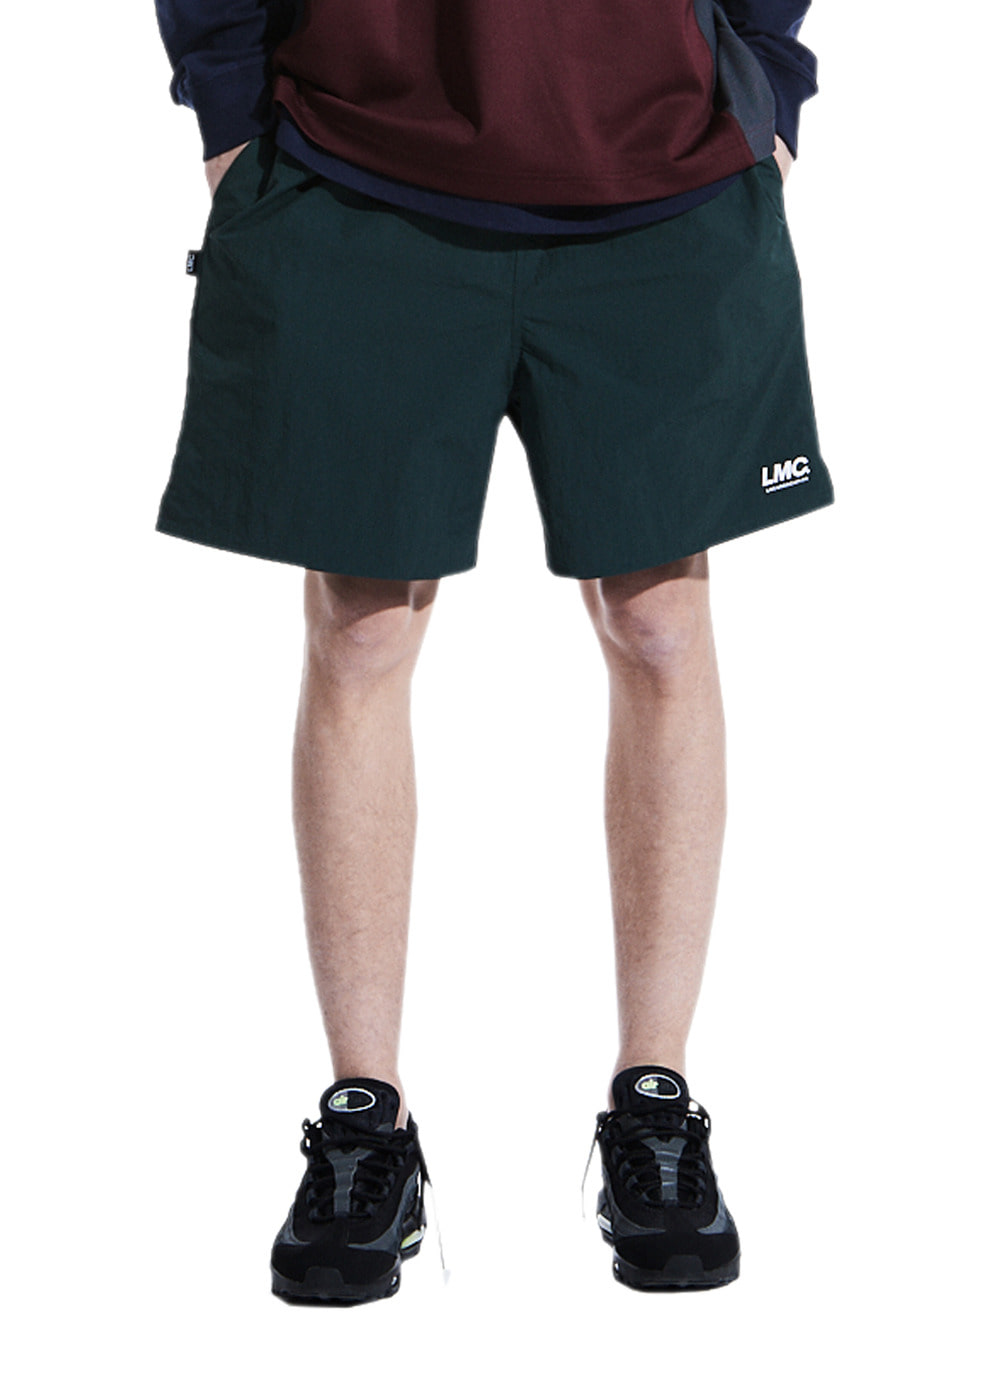 LMC ASSOCIATION TEAM SHORTS dark green